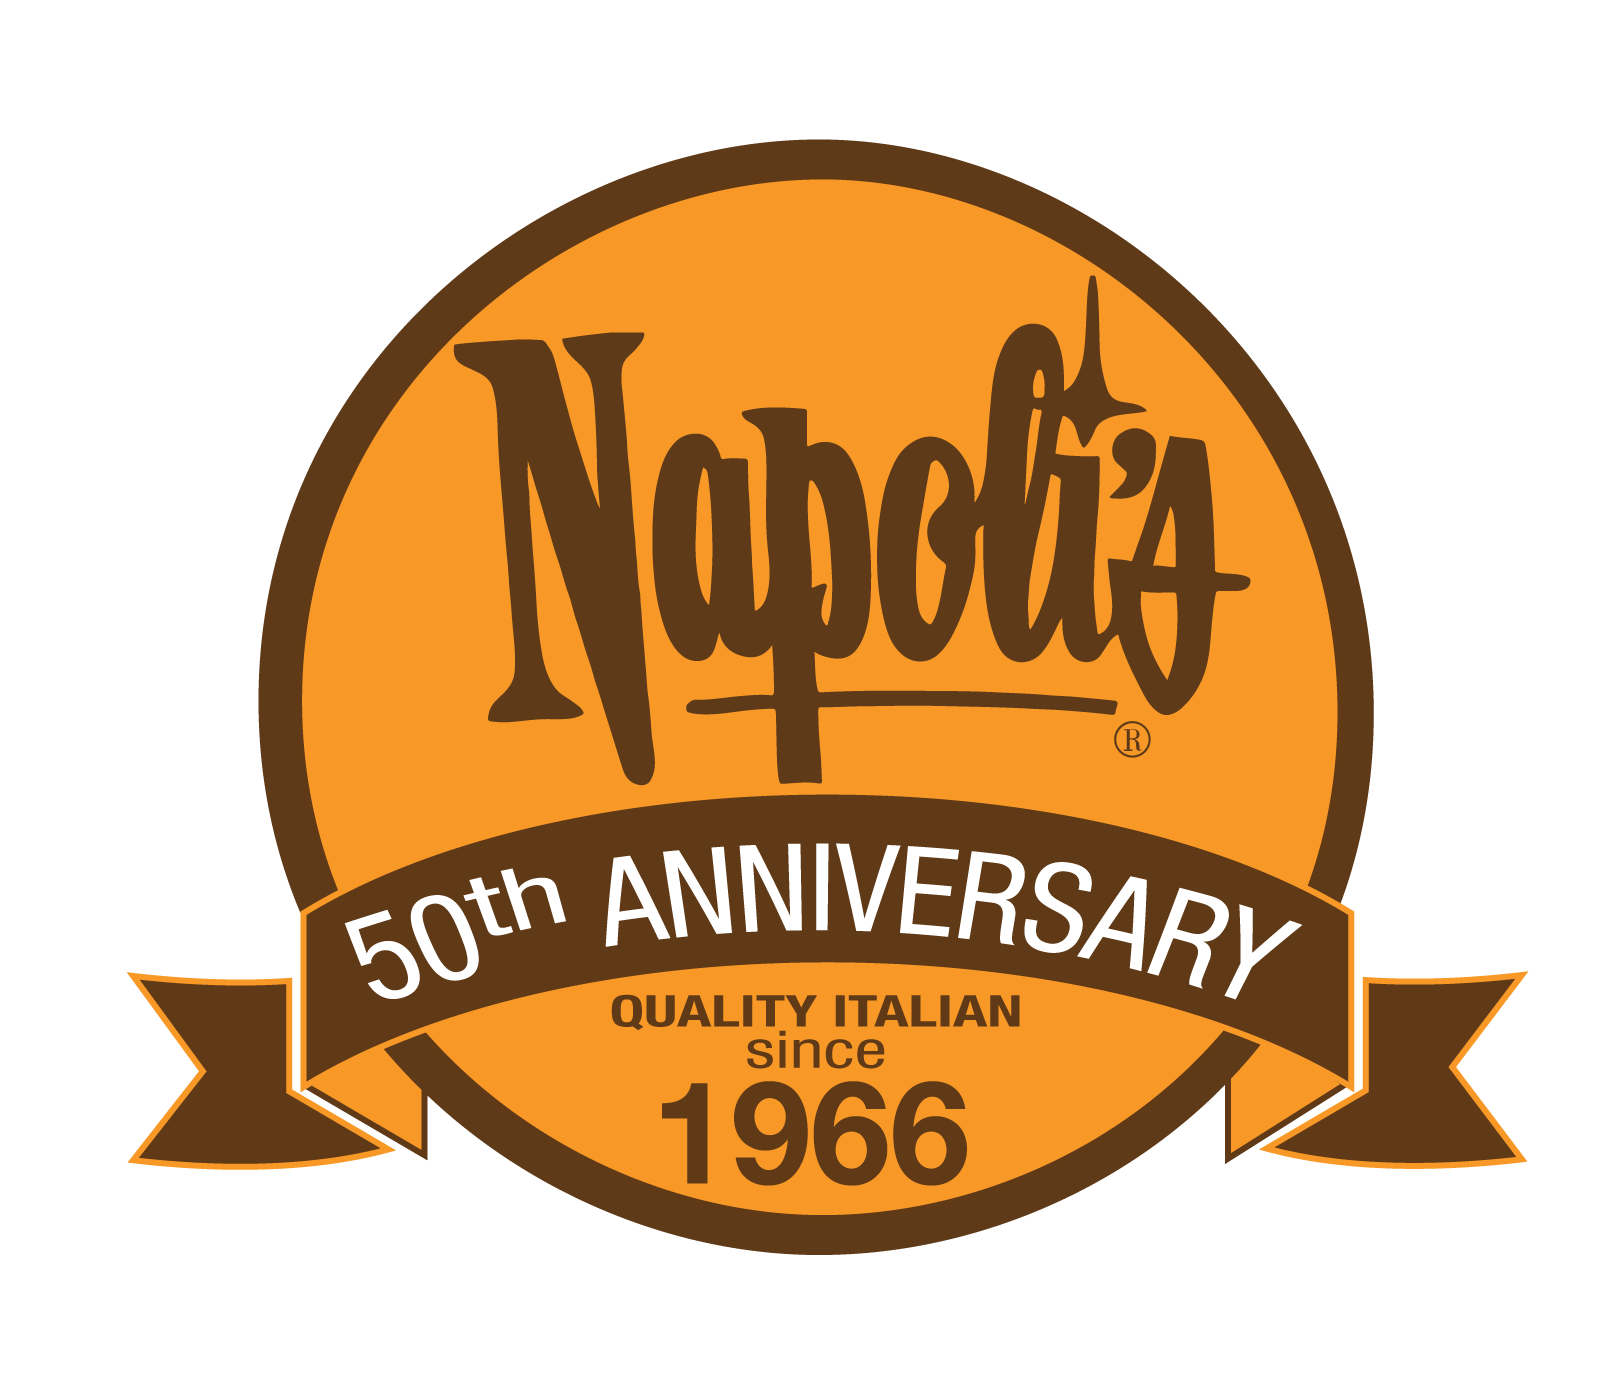 Napoli S Pizza Pasta And Subs Dine In And Delivery Napoli S